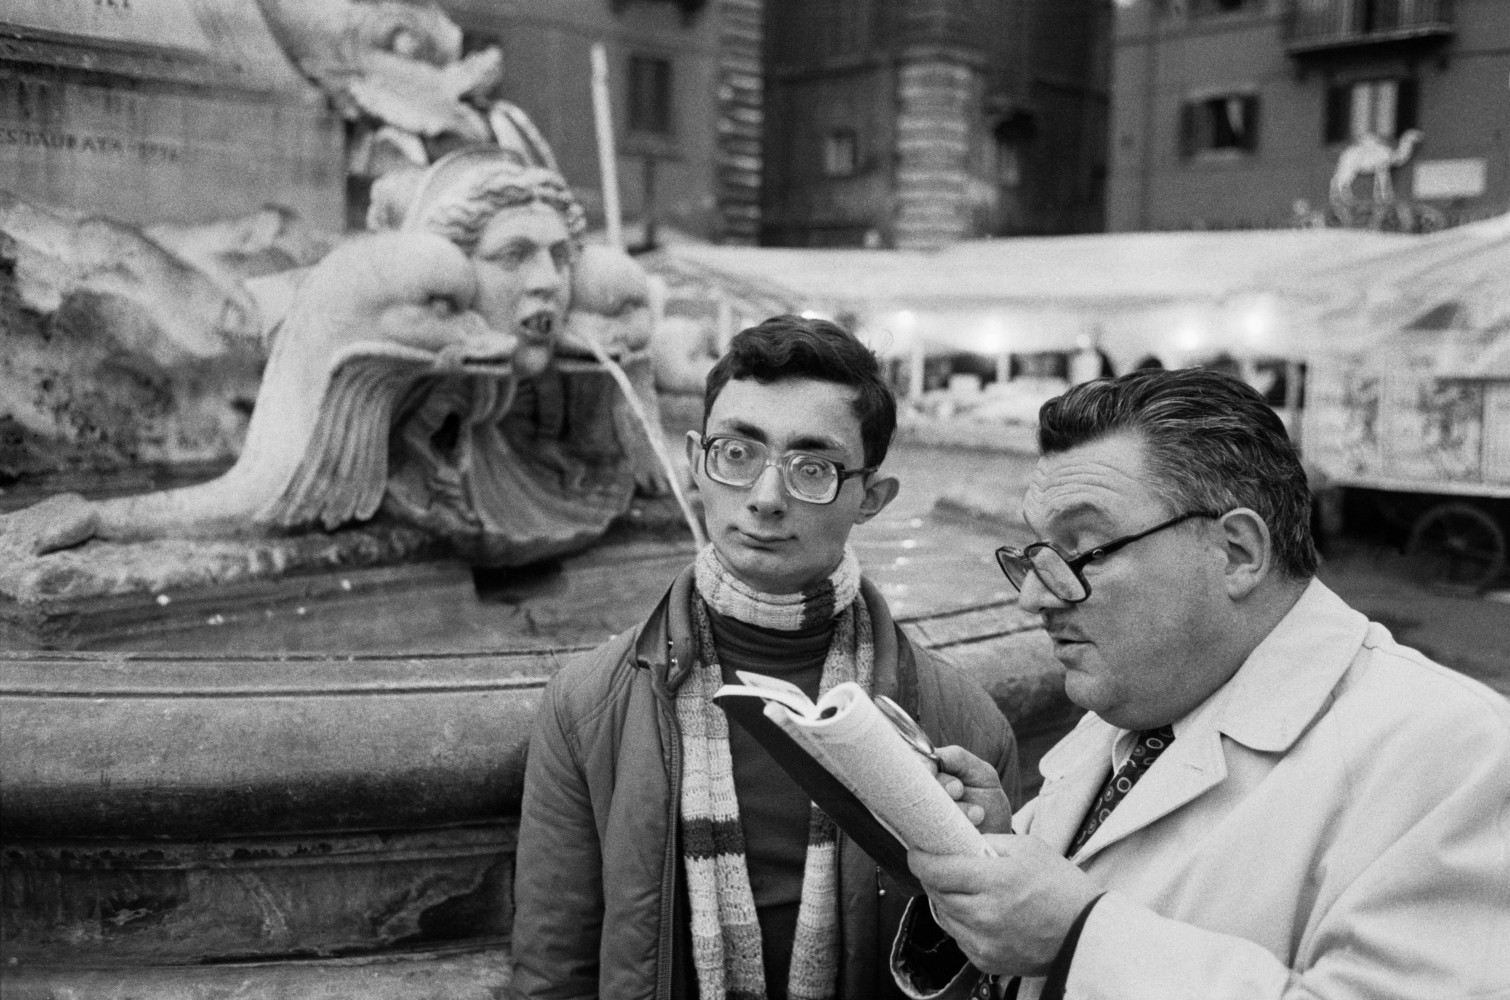 Black and white street photography by Richard Kalvar, two men in Piazza della Rotonda, Rome, Italy